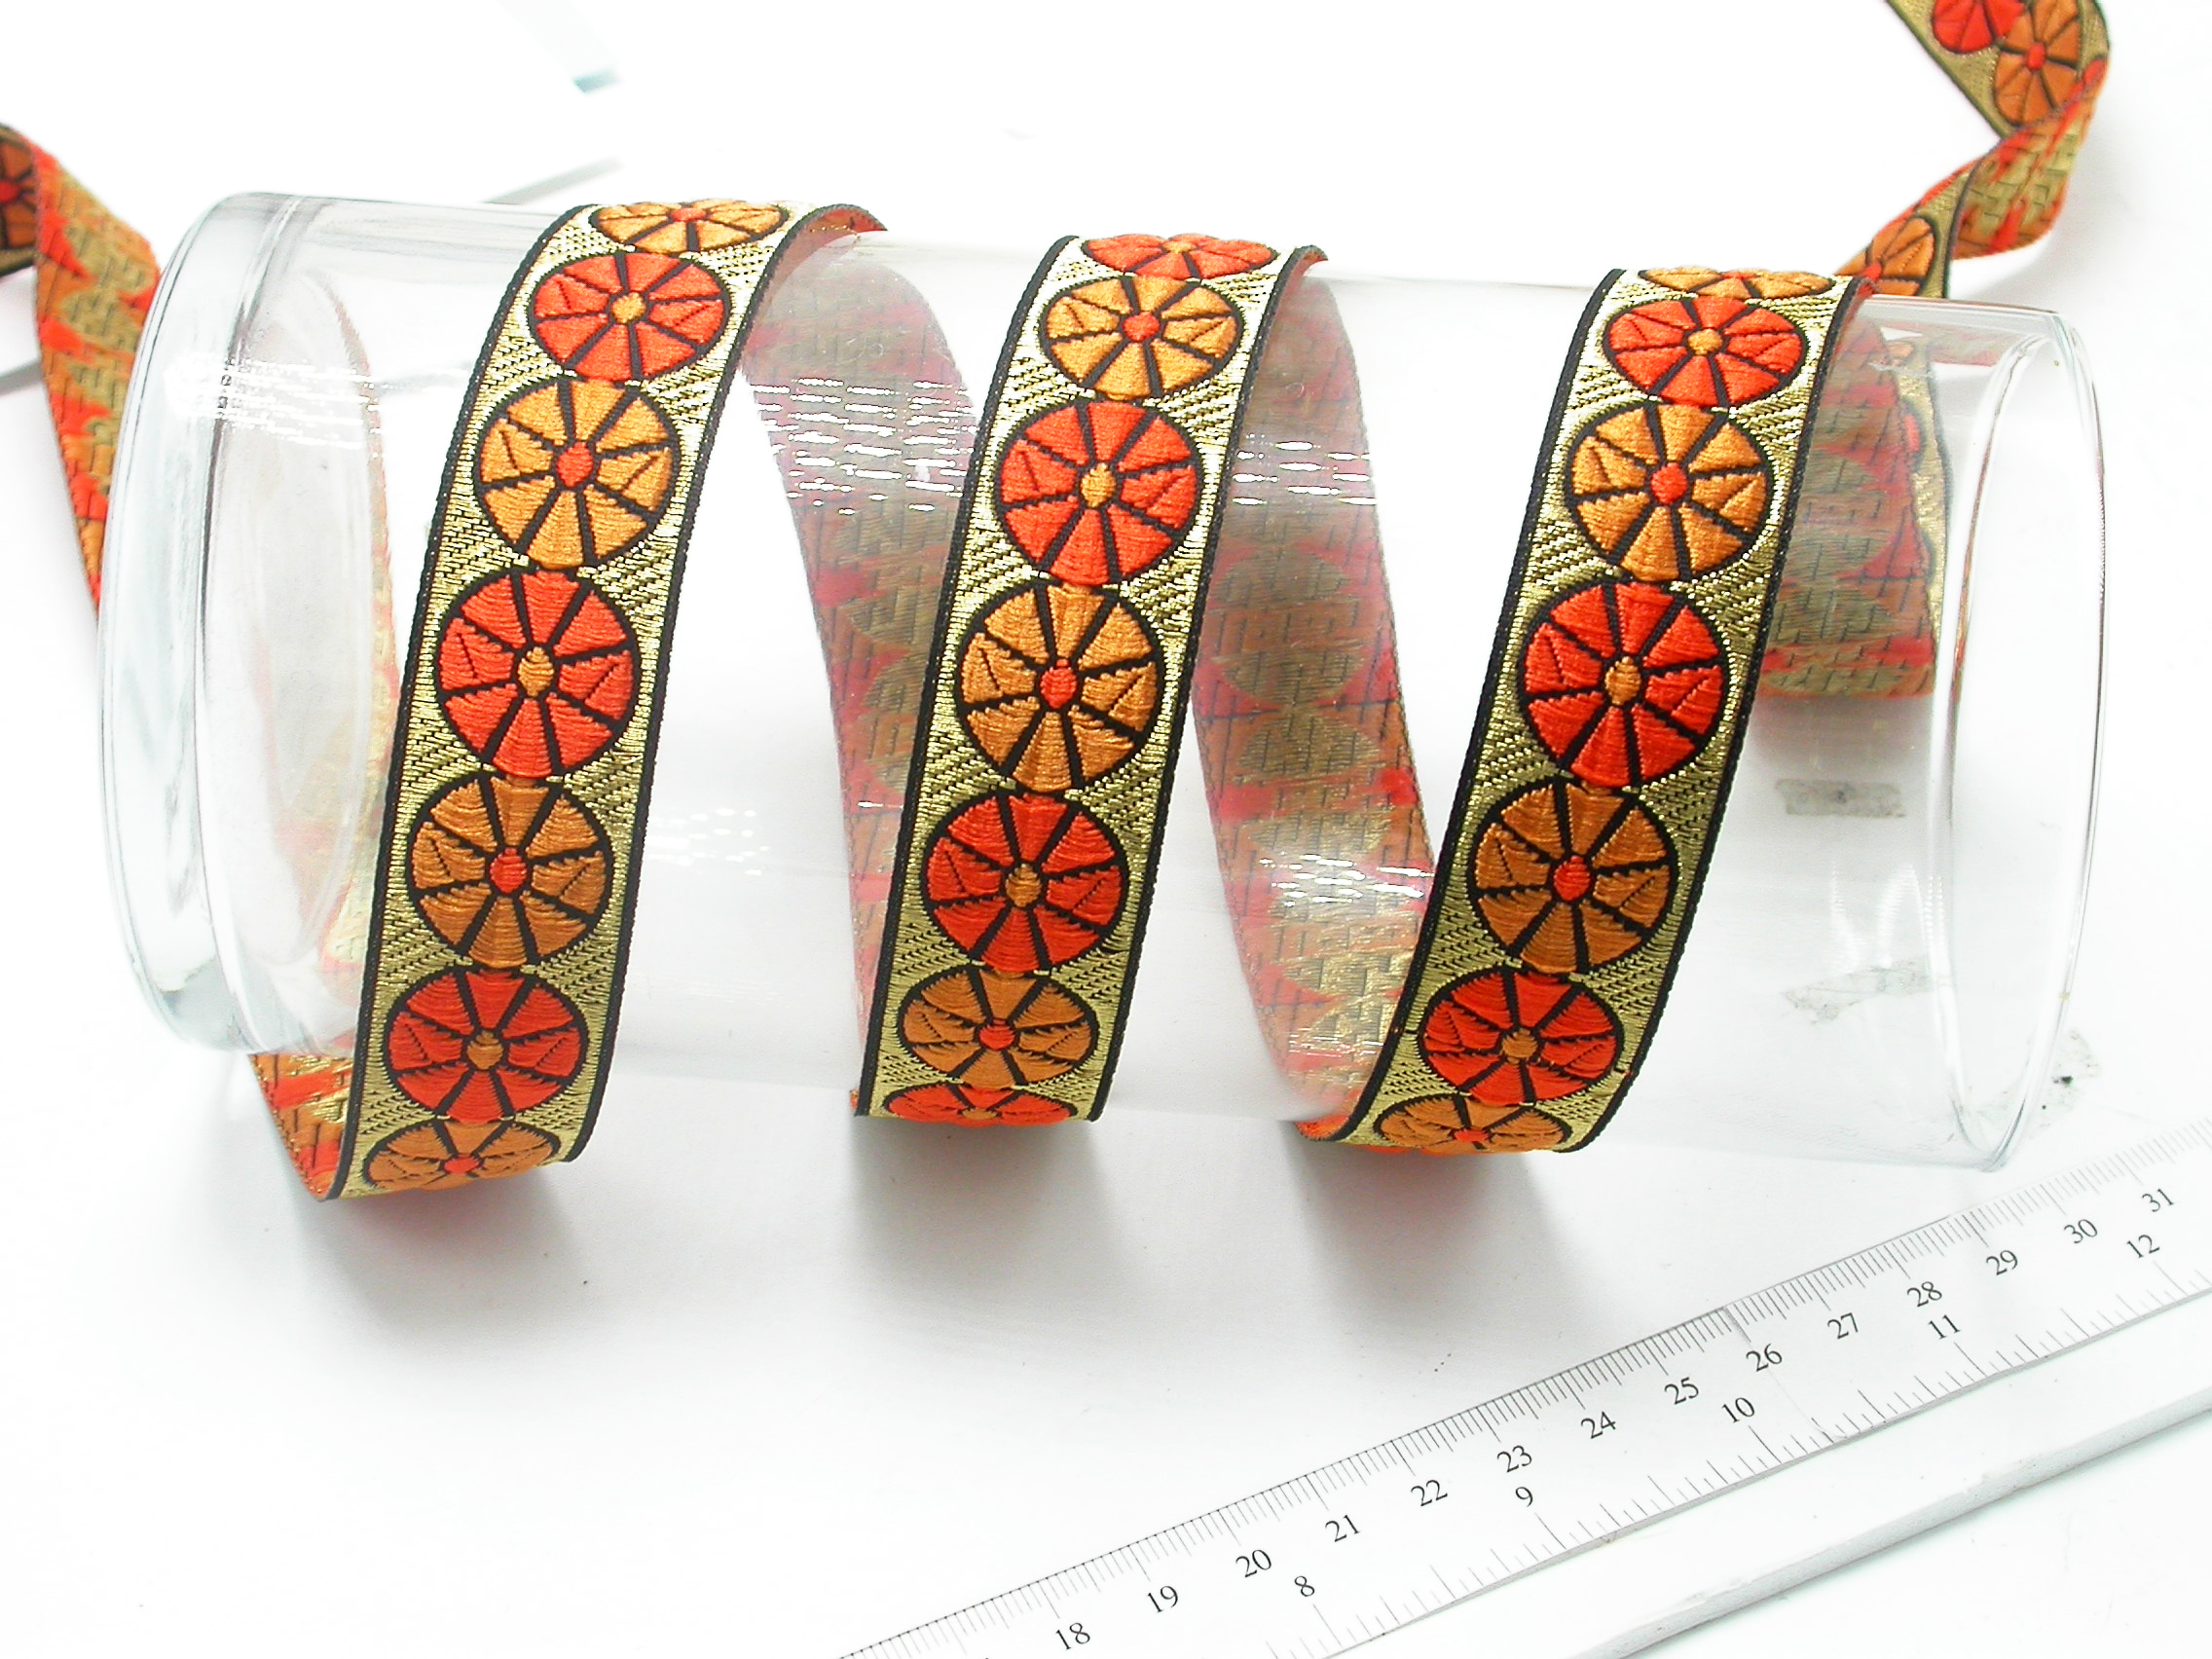 """Jacquard Ribbon 1"""" Color Wheels  Priced Per 3 yards & Up      Woven Jacquard Ribbon with Metallic  8 colorways"""